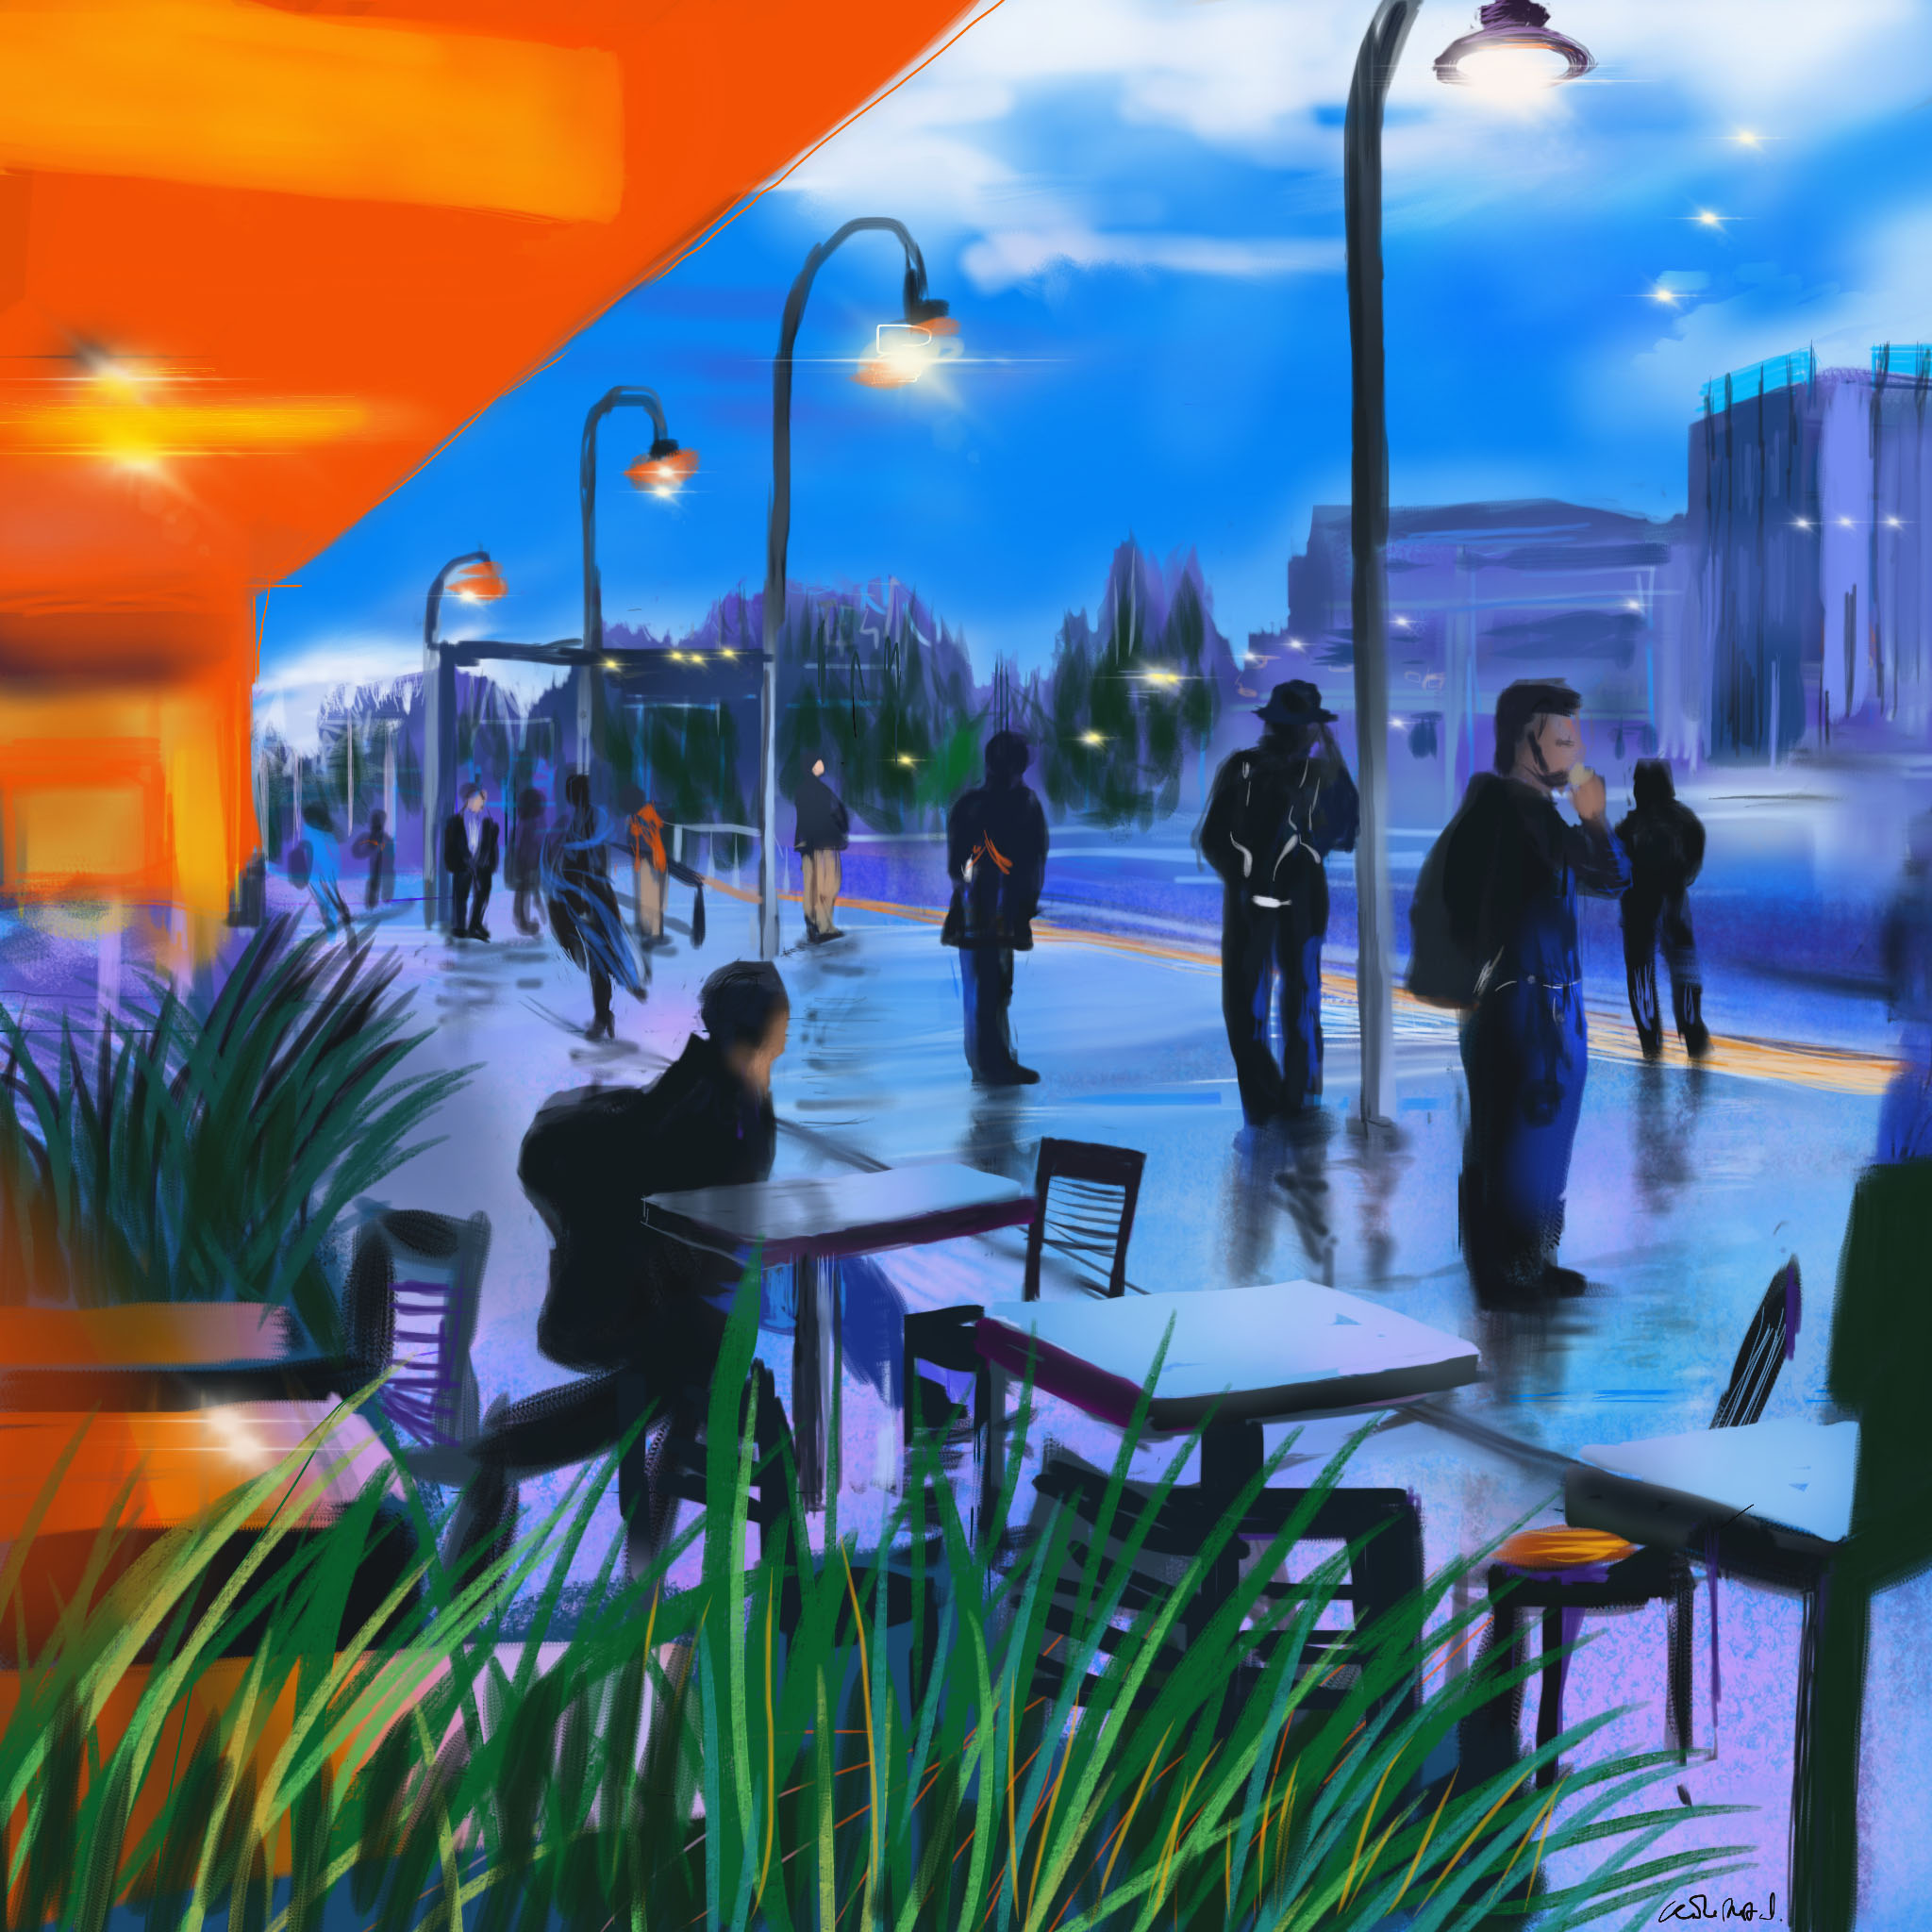 Waiting at the Station. See Digital Art Gallery/Silicon Valley